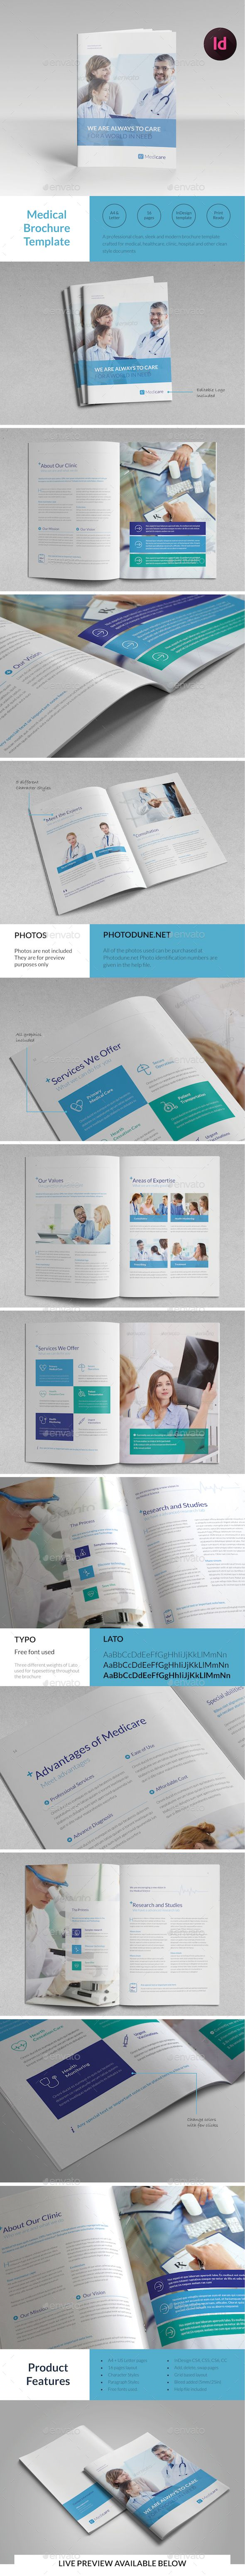 Medical Brochure Template | Impreso